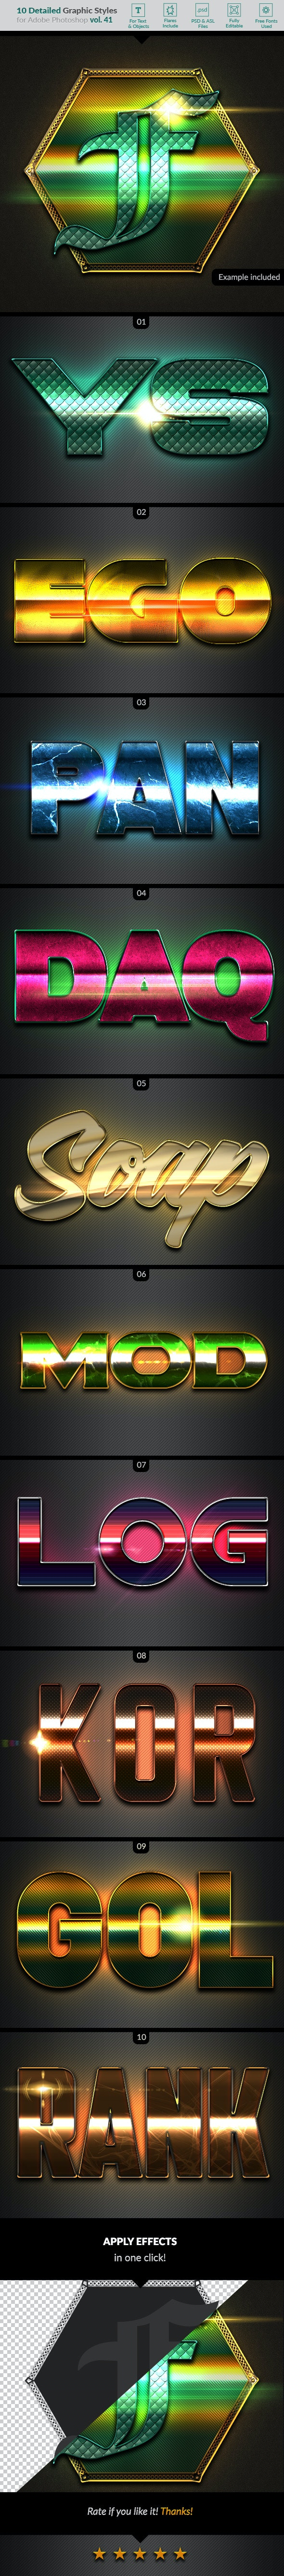 10 Text Effects Vol. 41 - Styles Photoshop